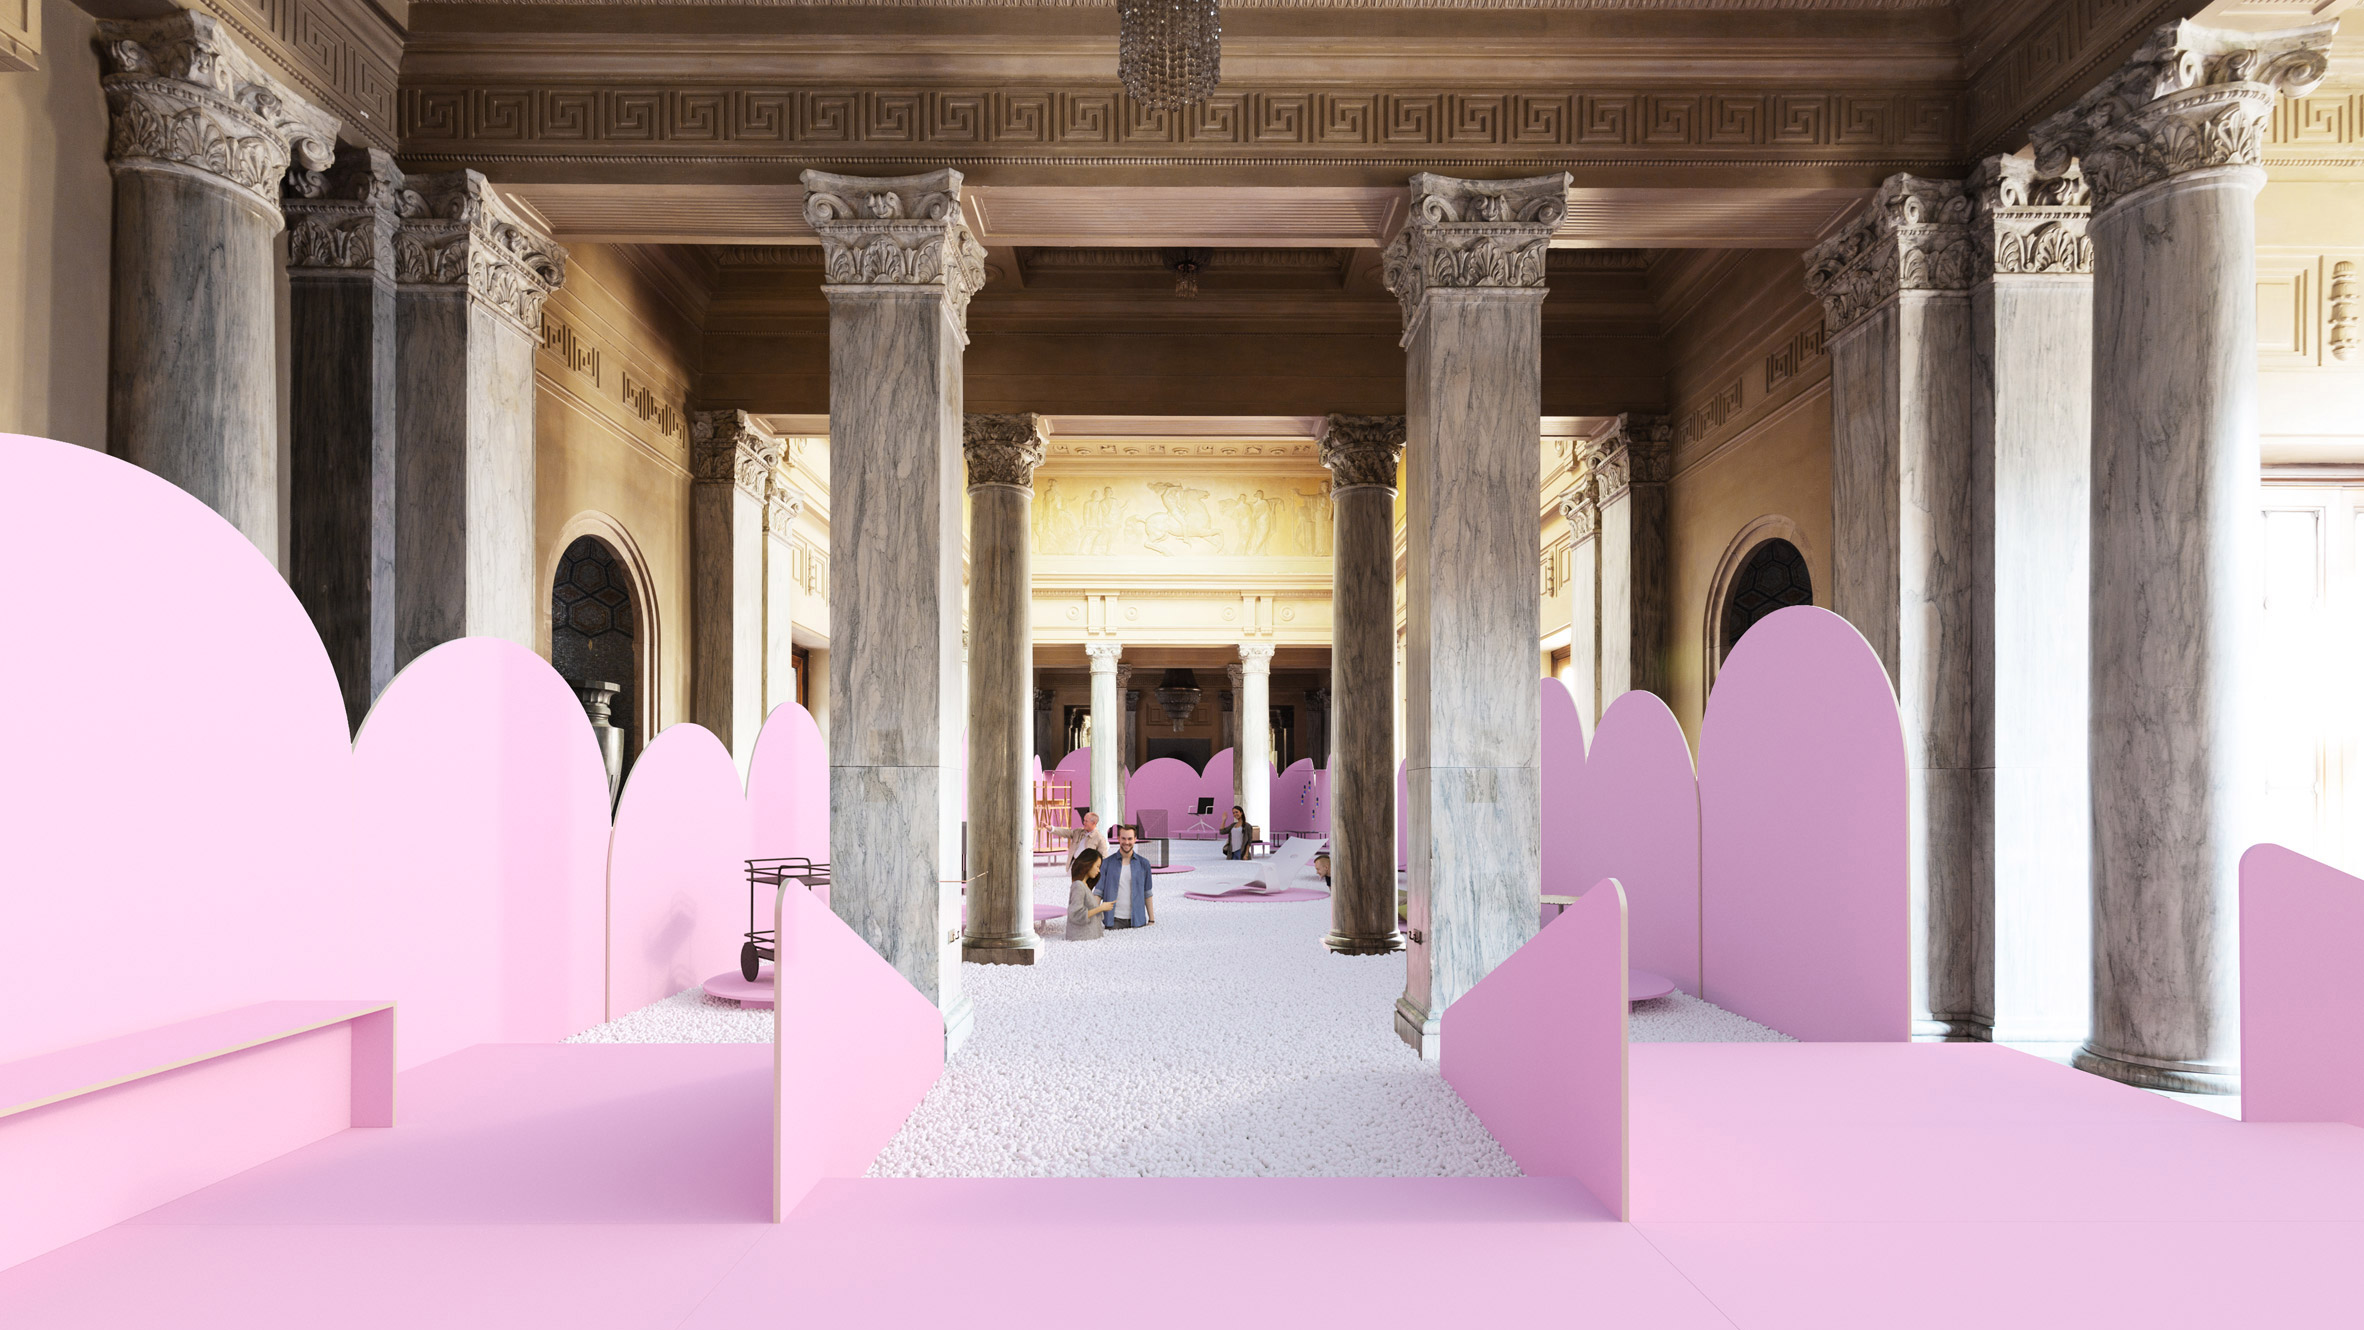 15 exhibitions and installations not to miss at Milan design week 2019